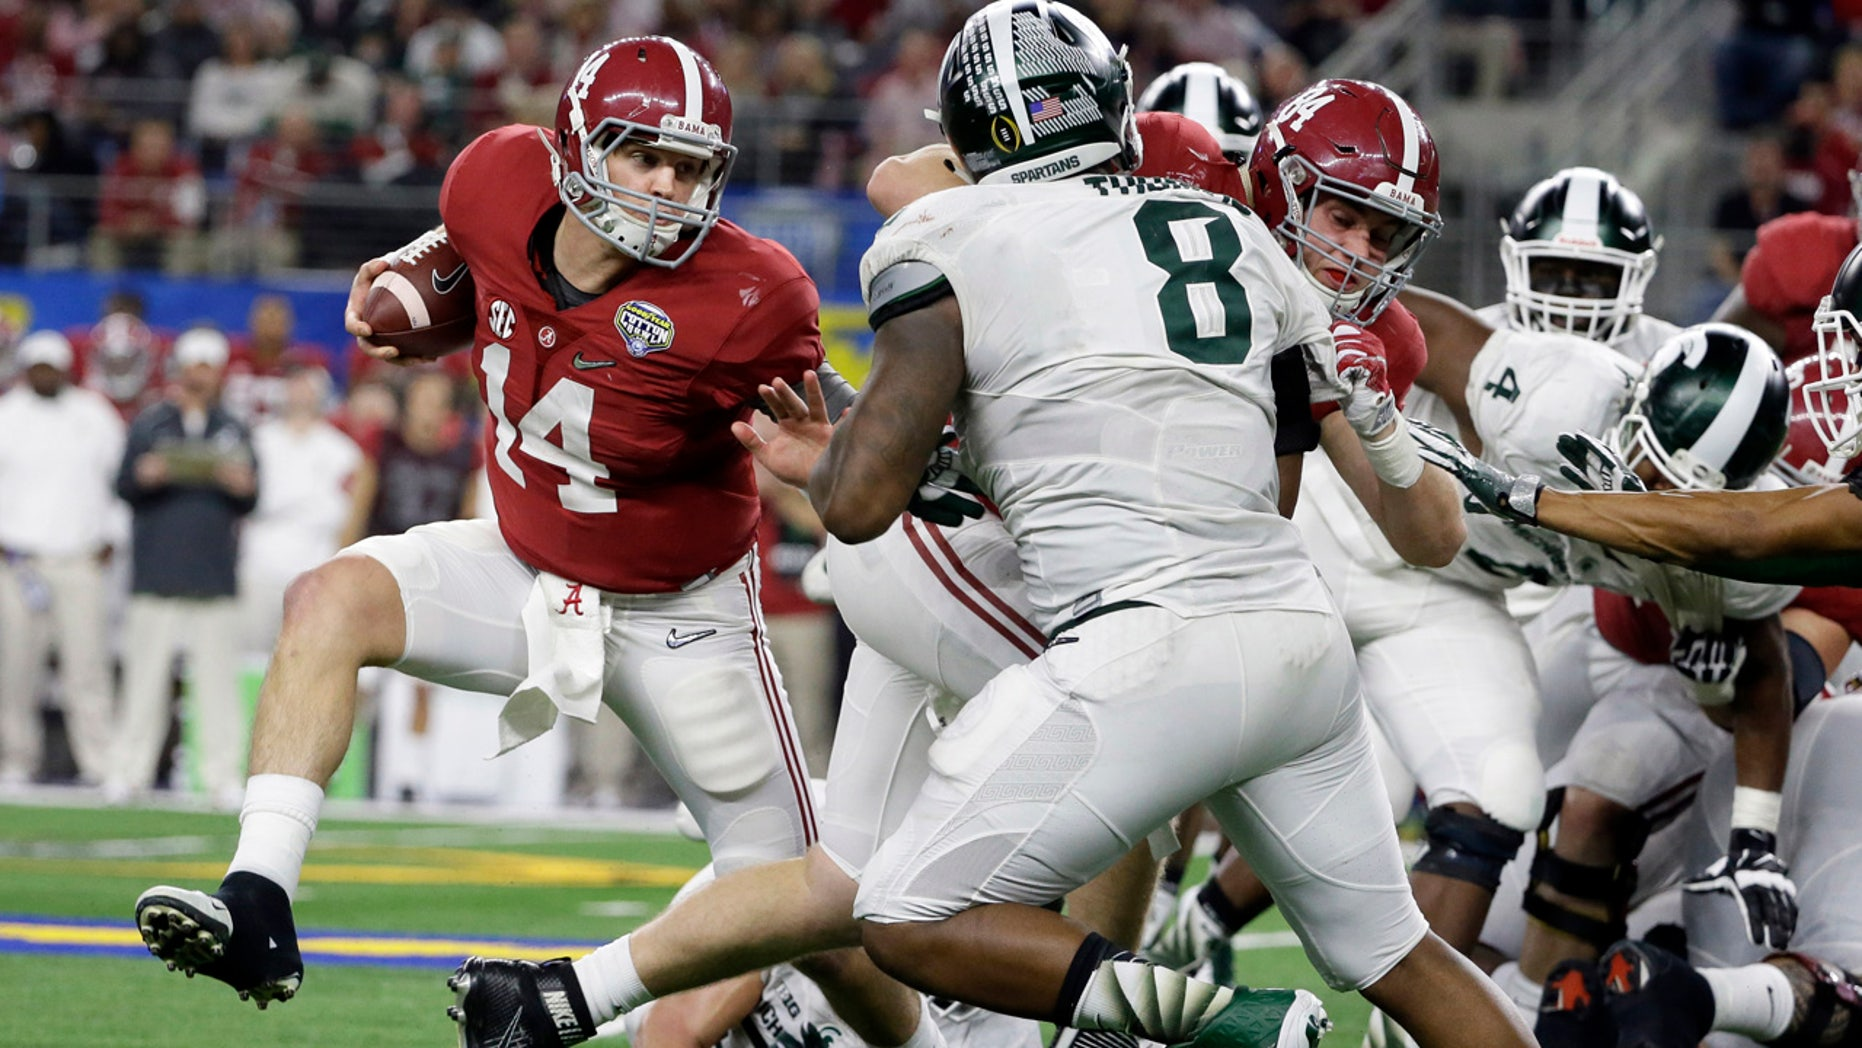 Dec. 31, 2015: Alabama quarterback Jake Coker (14) tries to escape Michigan State's defense during the second half of the Cotton Bowl NCAA college football semifinal playoff game in Arlington, Texas. (AP Photo/Tony Gutierrez)